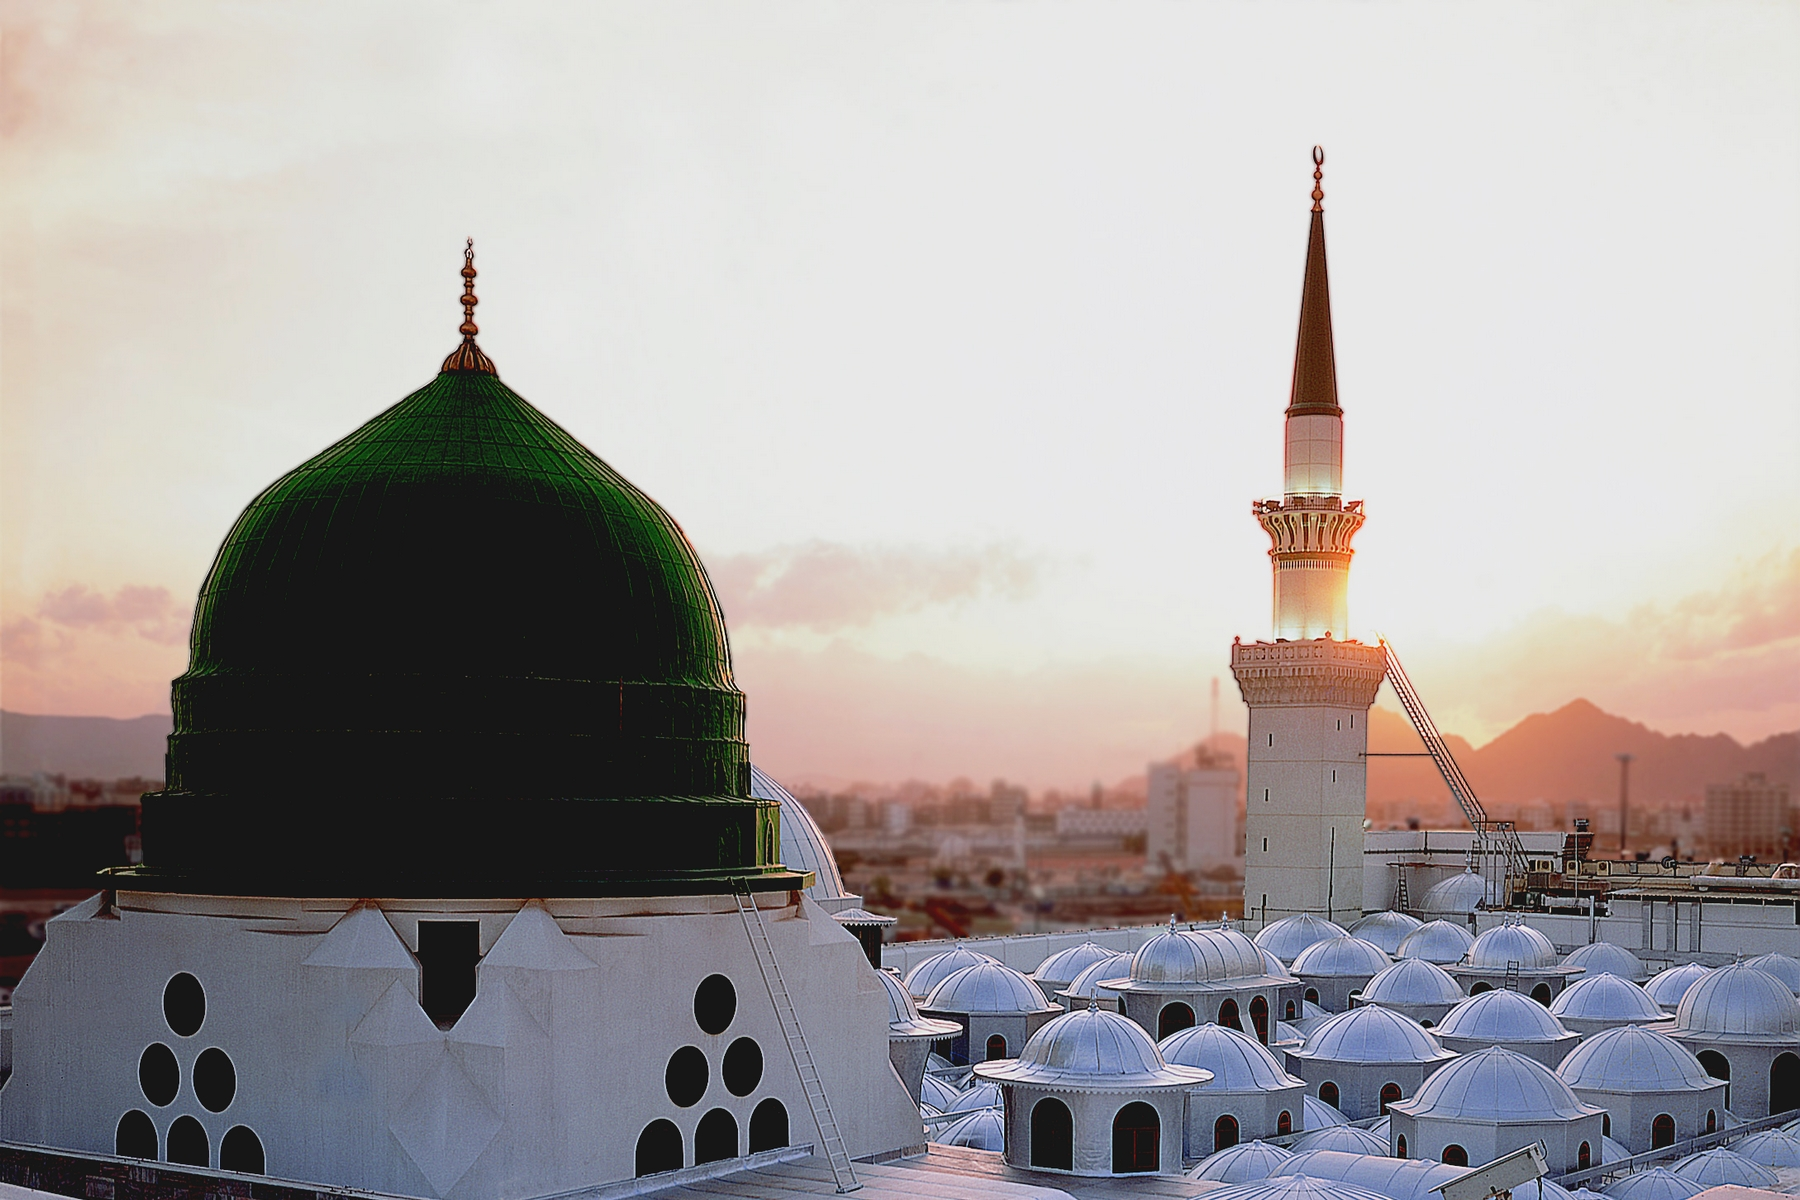 Madinah-Green-Dome-1-386762